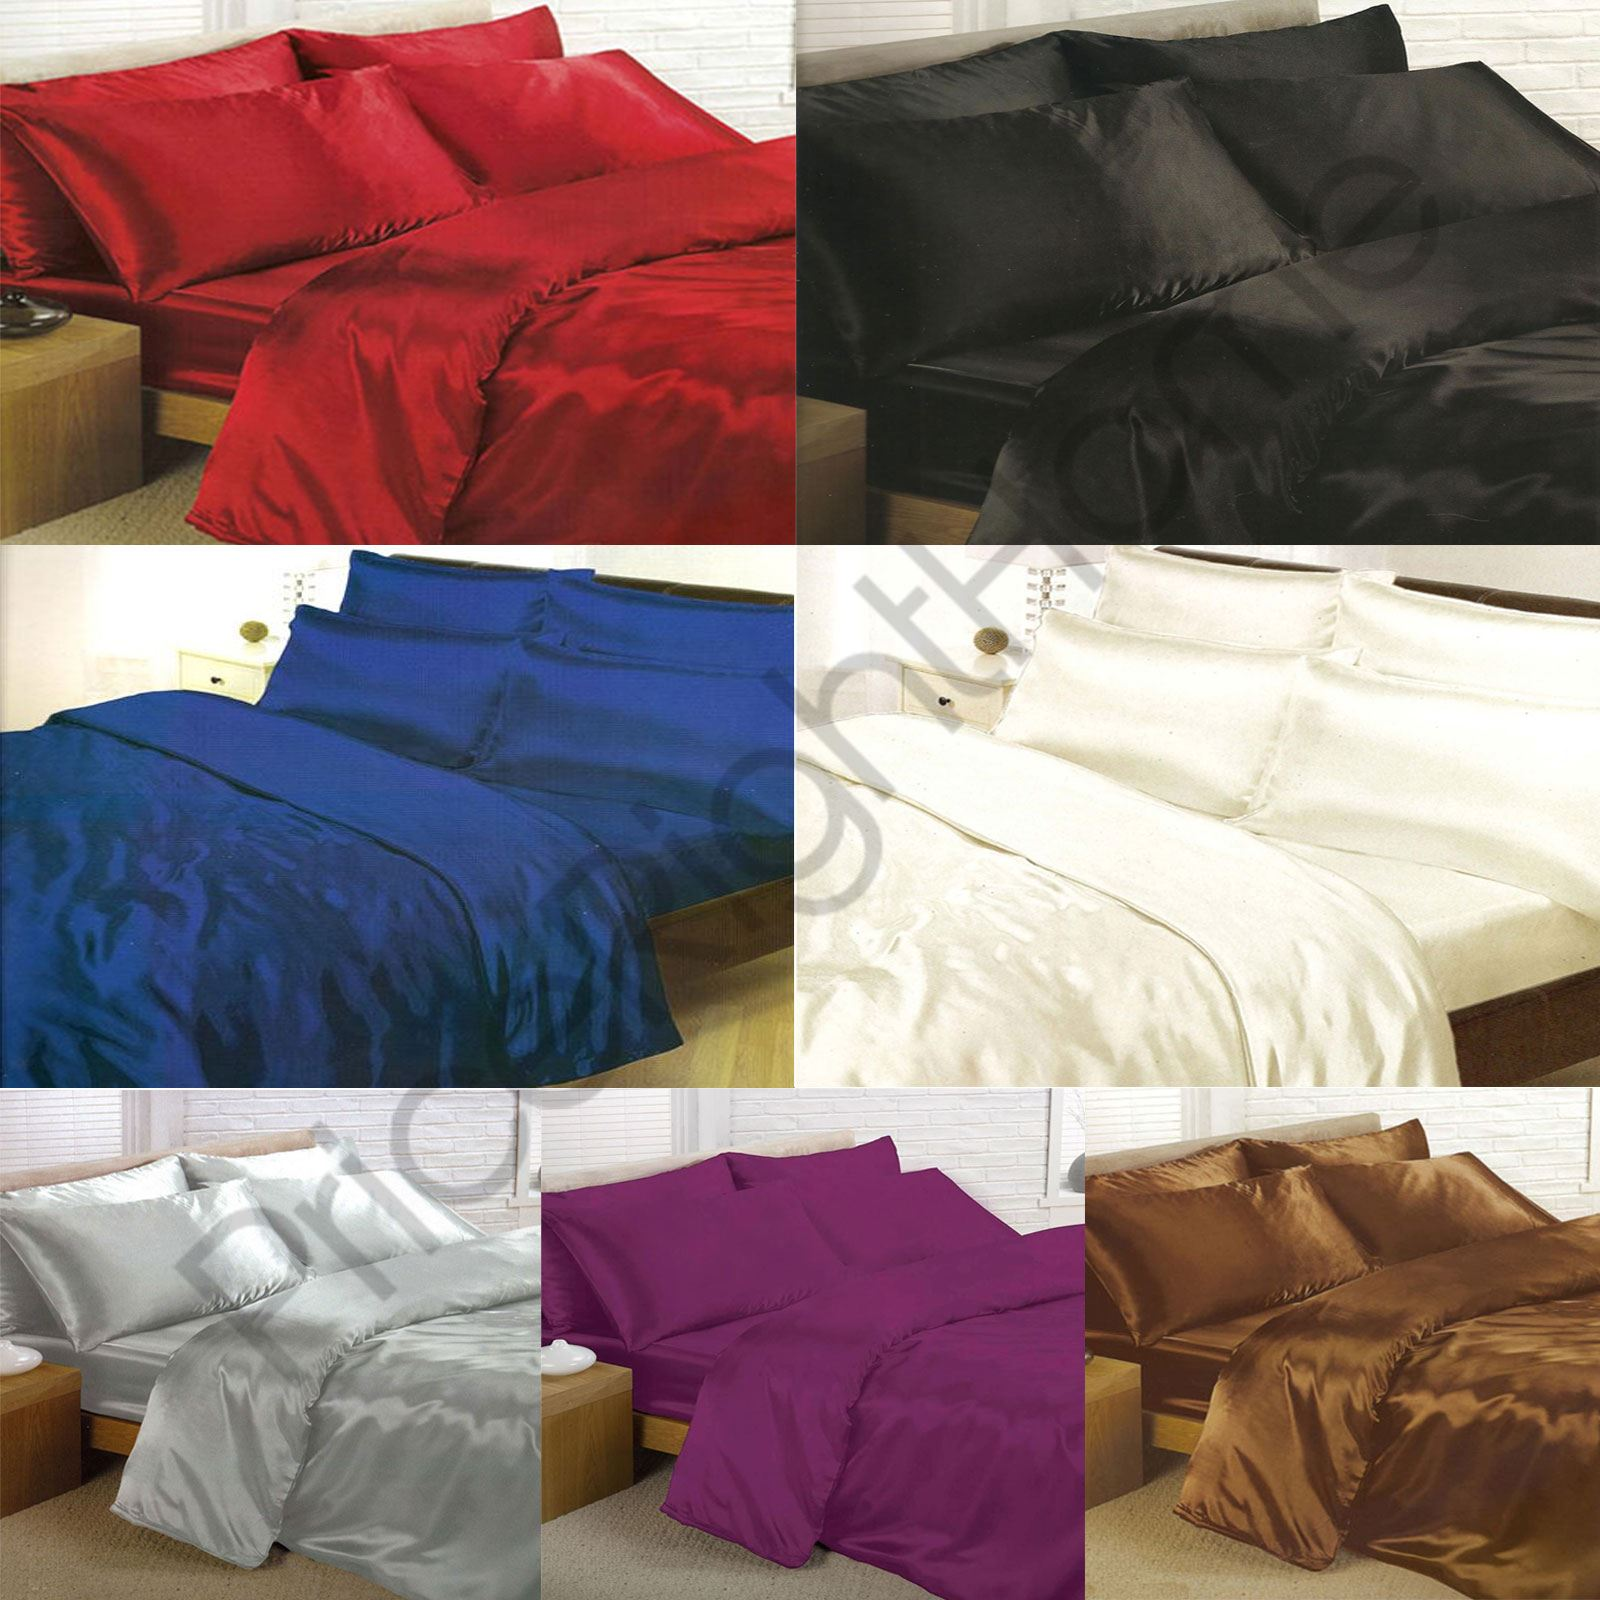 satin bedding sets duvet cover fitted sheet pillowcases. Black Bedroom Furniture Sets. Home Design Ideas